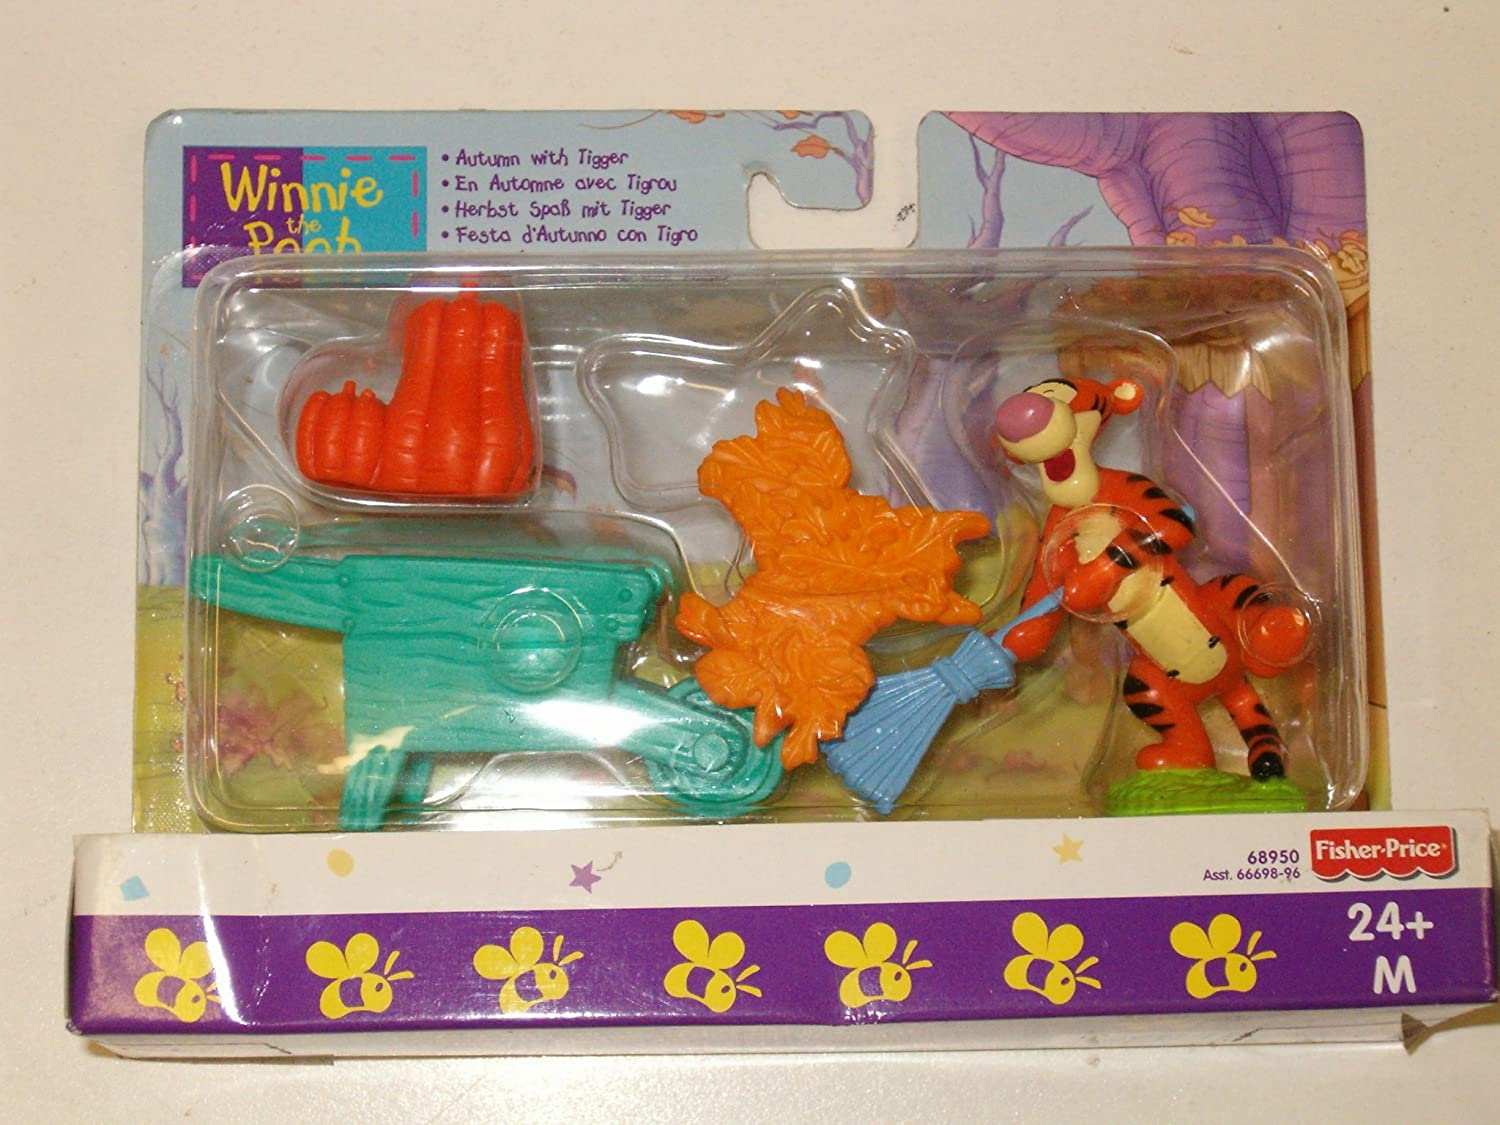 Barato Winnie the Pooh (Autumn with Tigger) Figurines by Winnie the Pooh